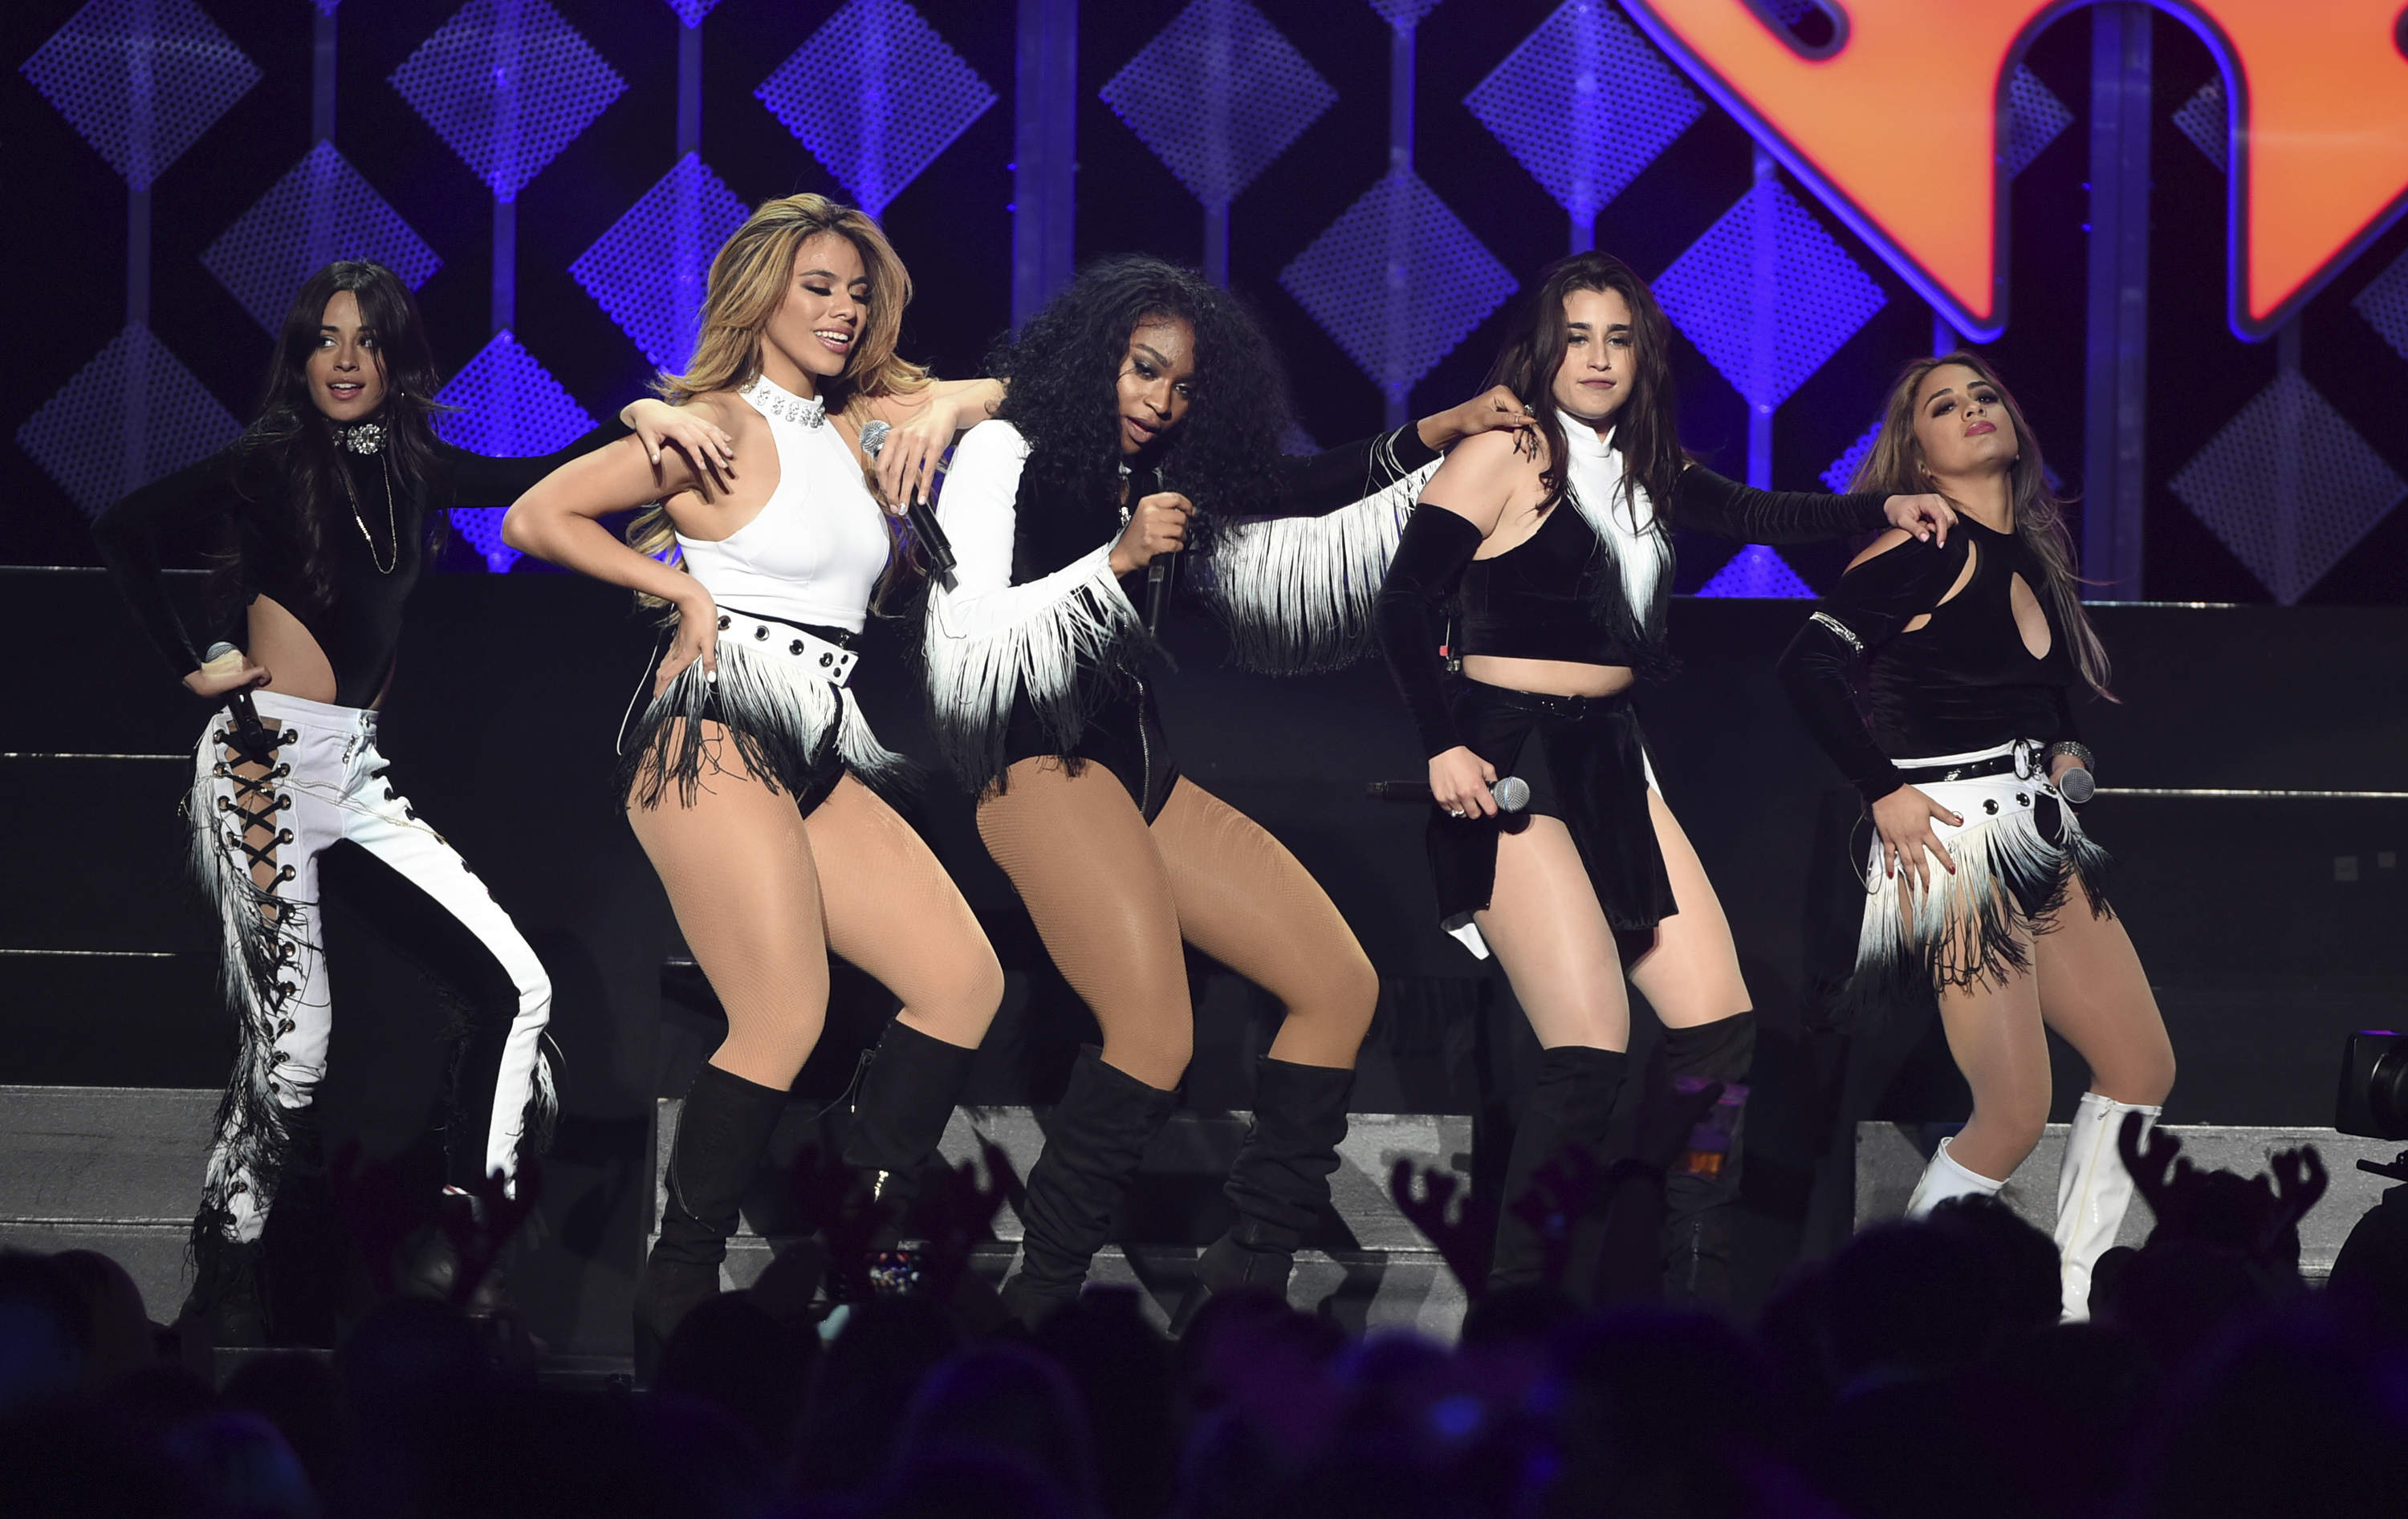 Fifth Harmony perform at the Jingle Ball 2016